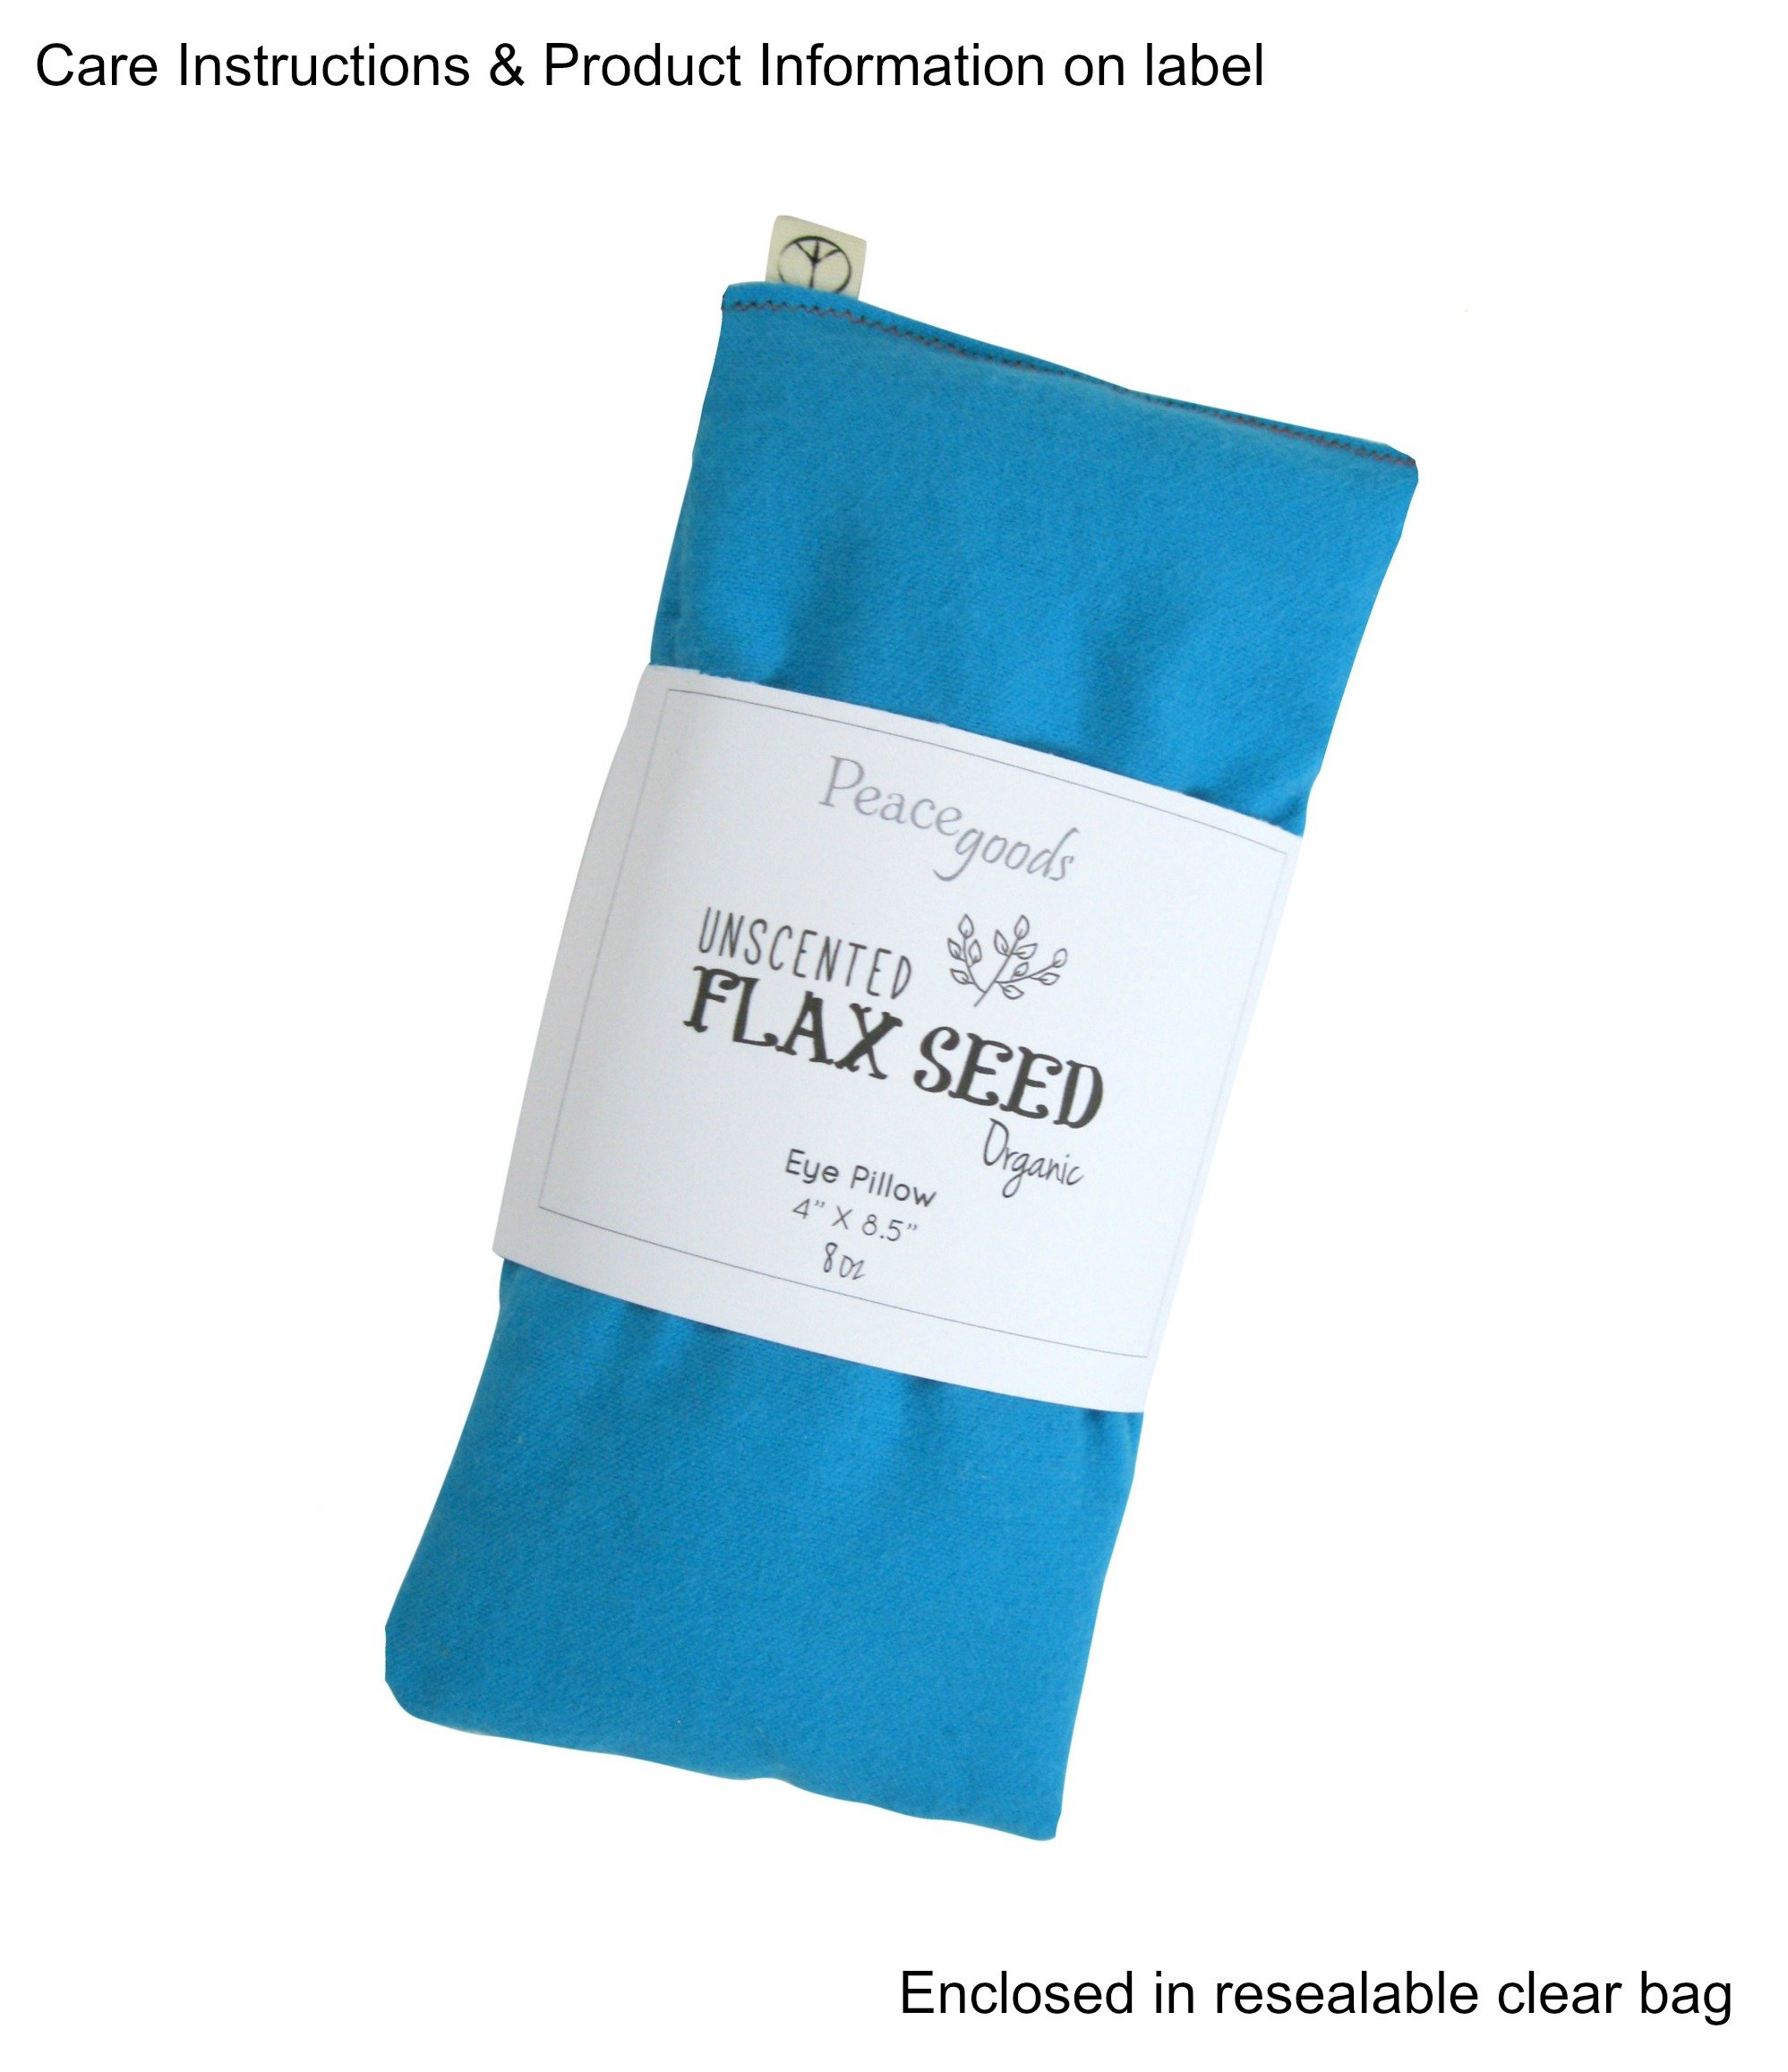 Peacegoods Unscented Organic Flax Seed Eye Pillow - Pack of (6) - Soft Cotton Flannel 4 x 8.5 - Pink Green Purple Gray Fuschia Aqua Turquoise Blue by Peacegoods (Image #2)